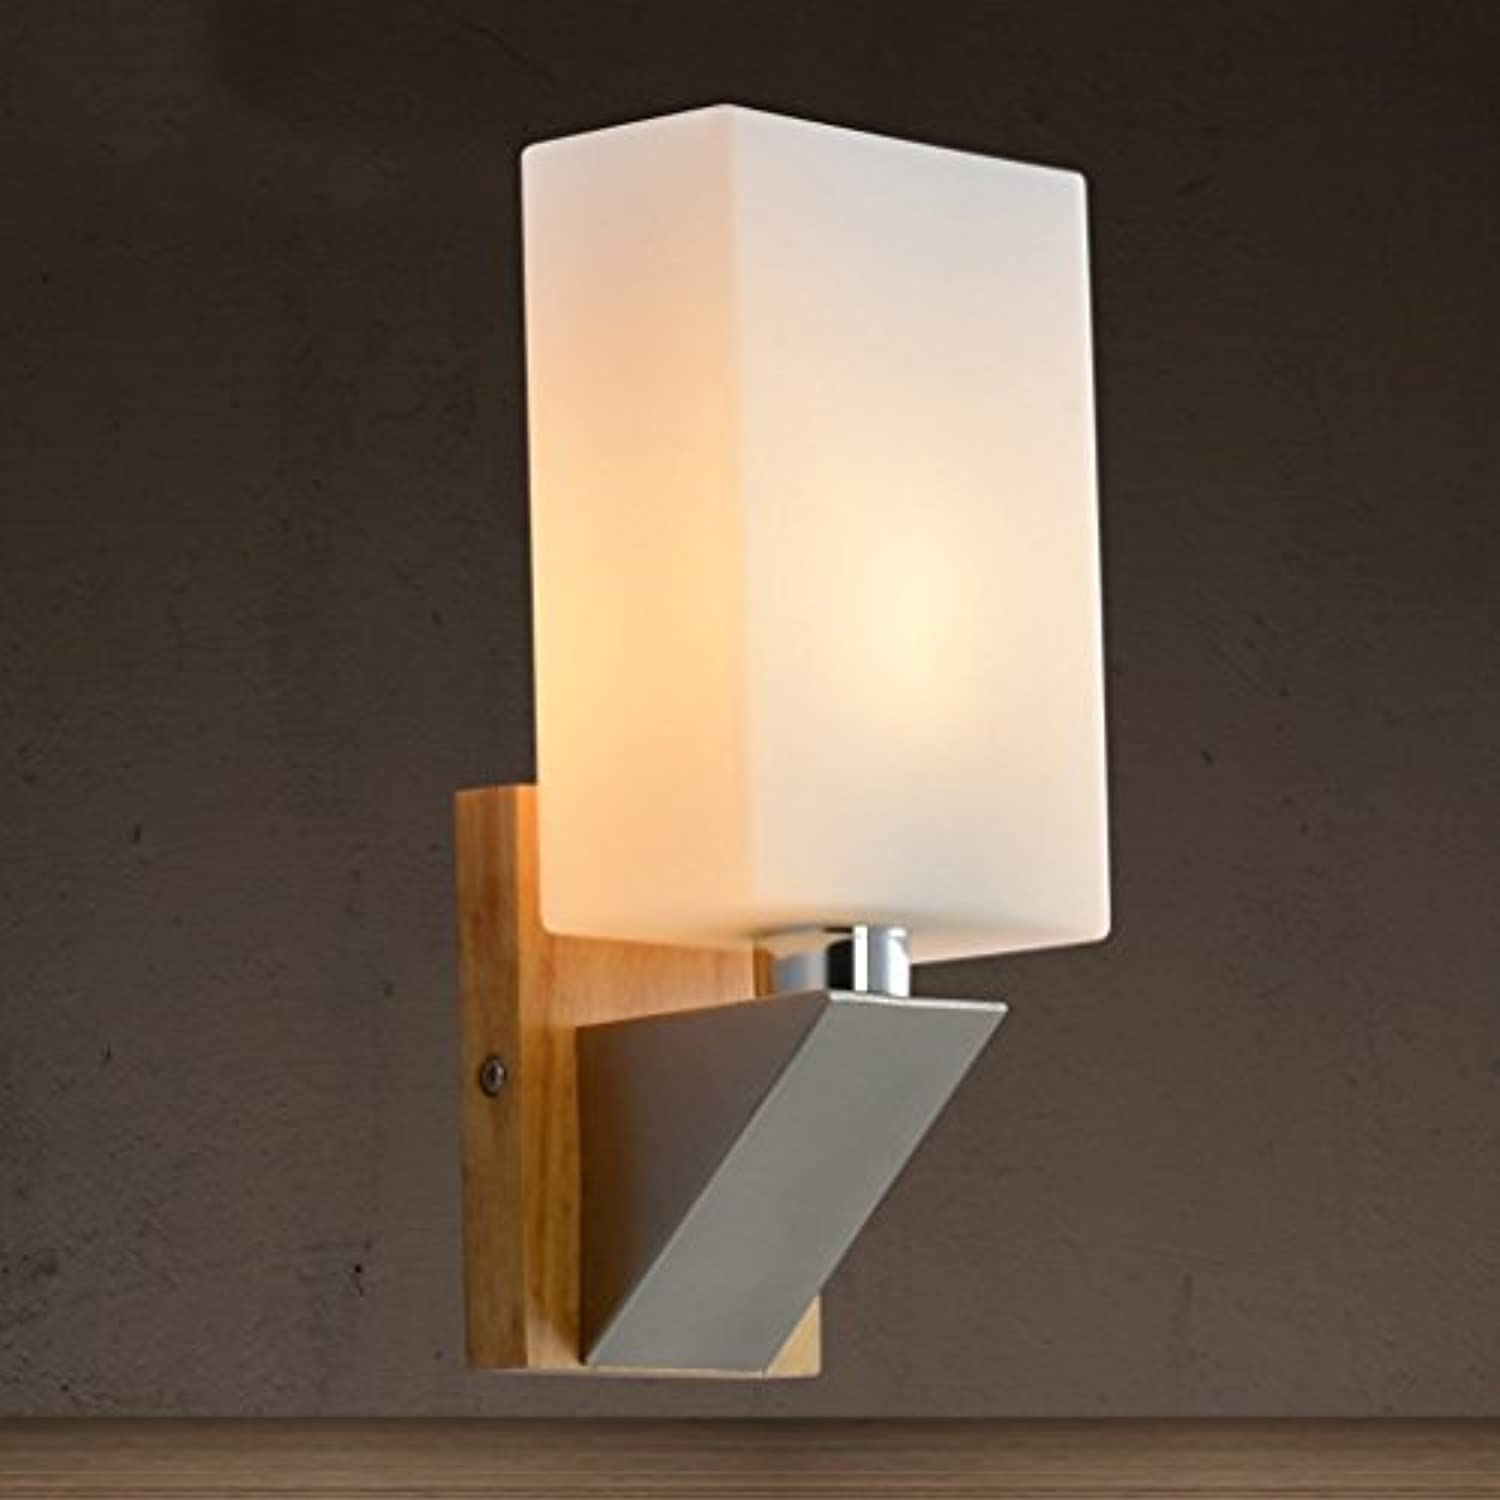 GYR Wall Lamp American Retro Single Head Lamp Industrial Wind Restaurant Cafe Bar Corridor Personalized Decoration Water Pipe Wall Lamp